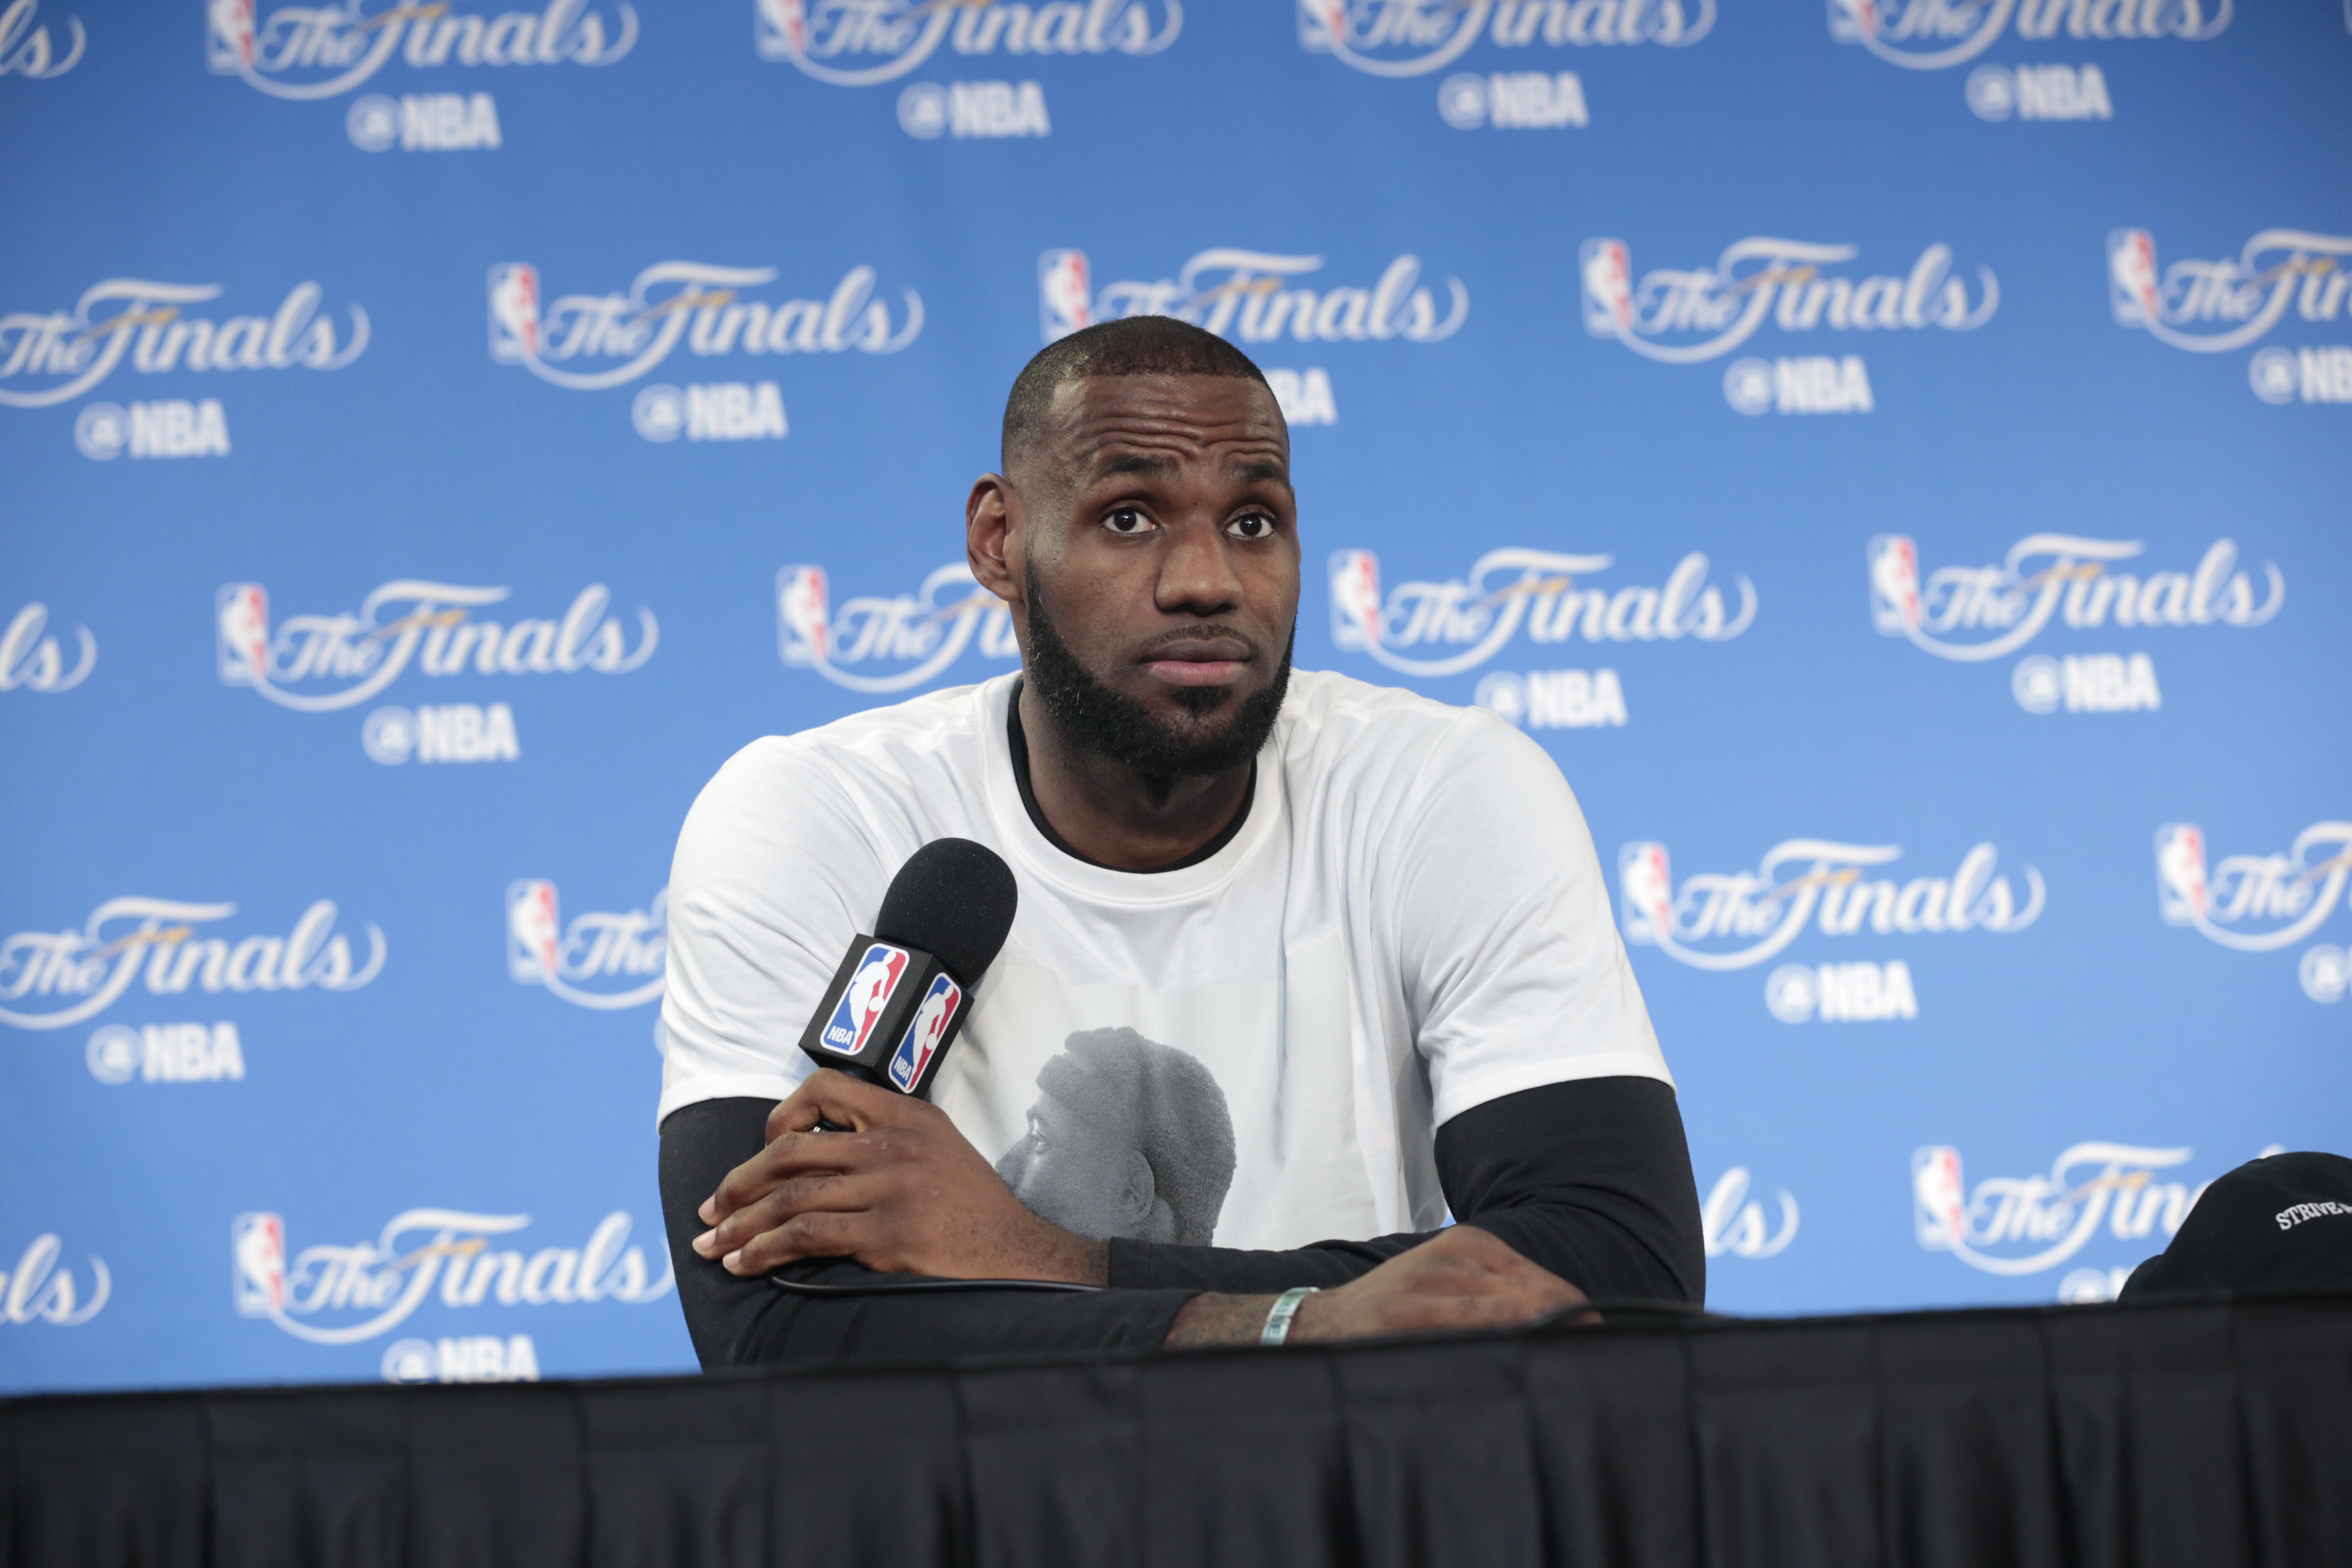 2017 NBA Finals - Practice and Media Availability